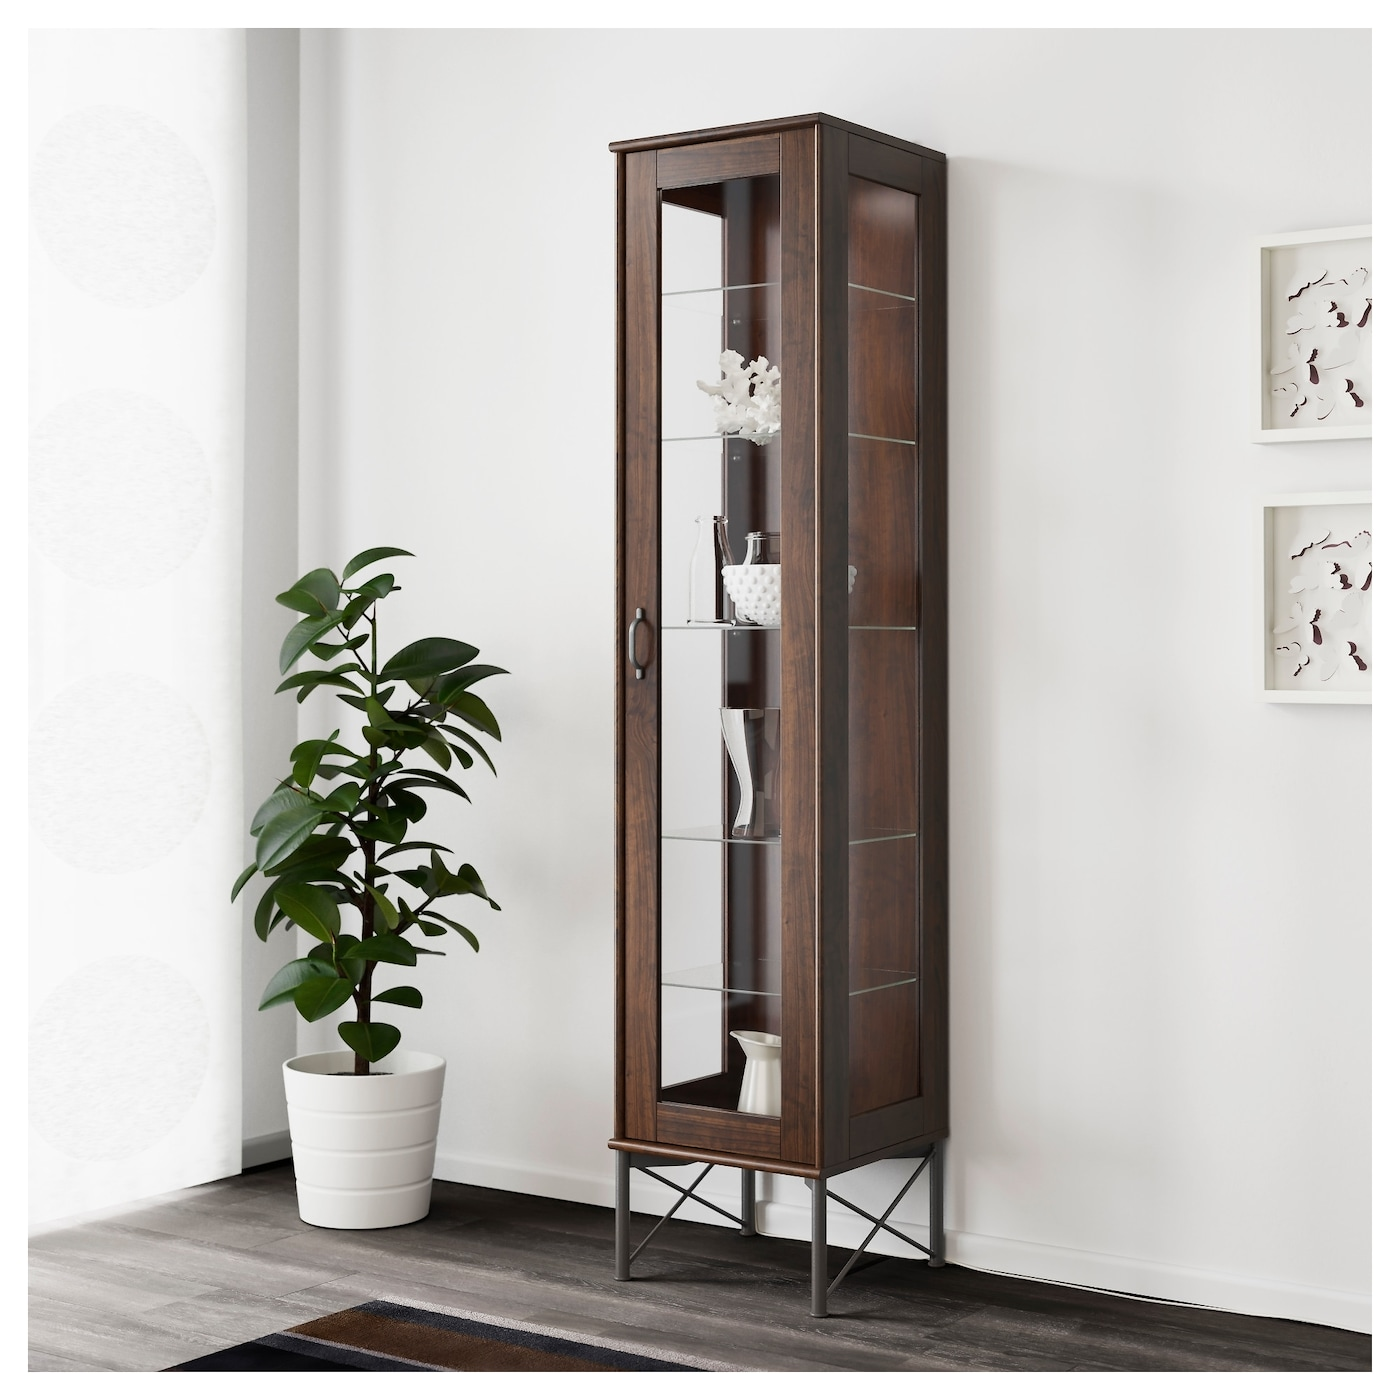 Tockarp Glass Door Cabinet Brown 38x175 Cm Ikea